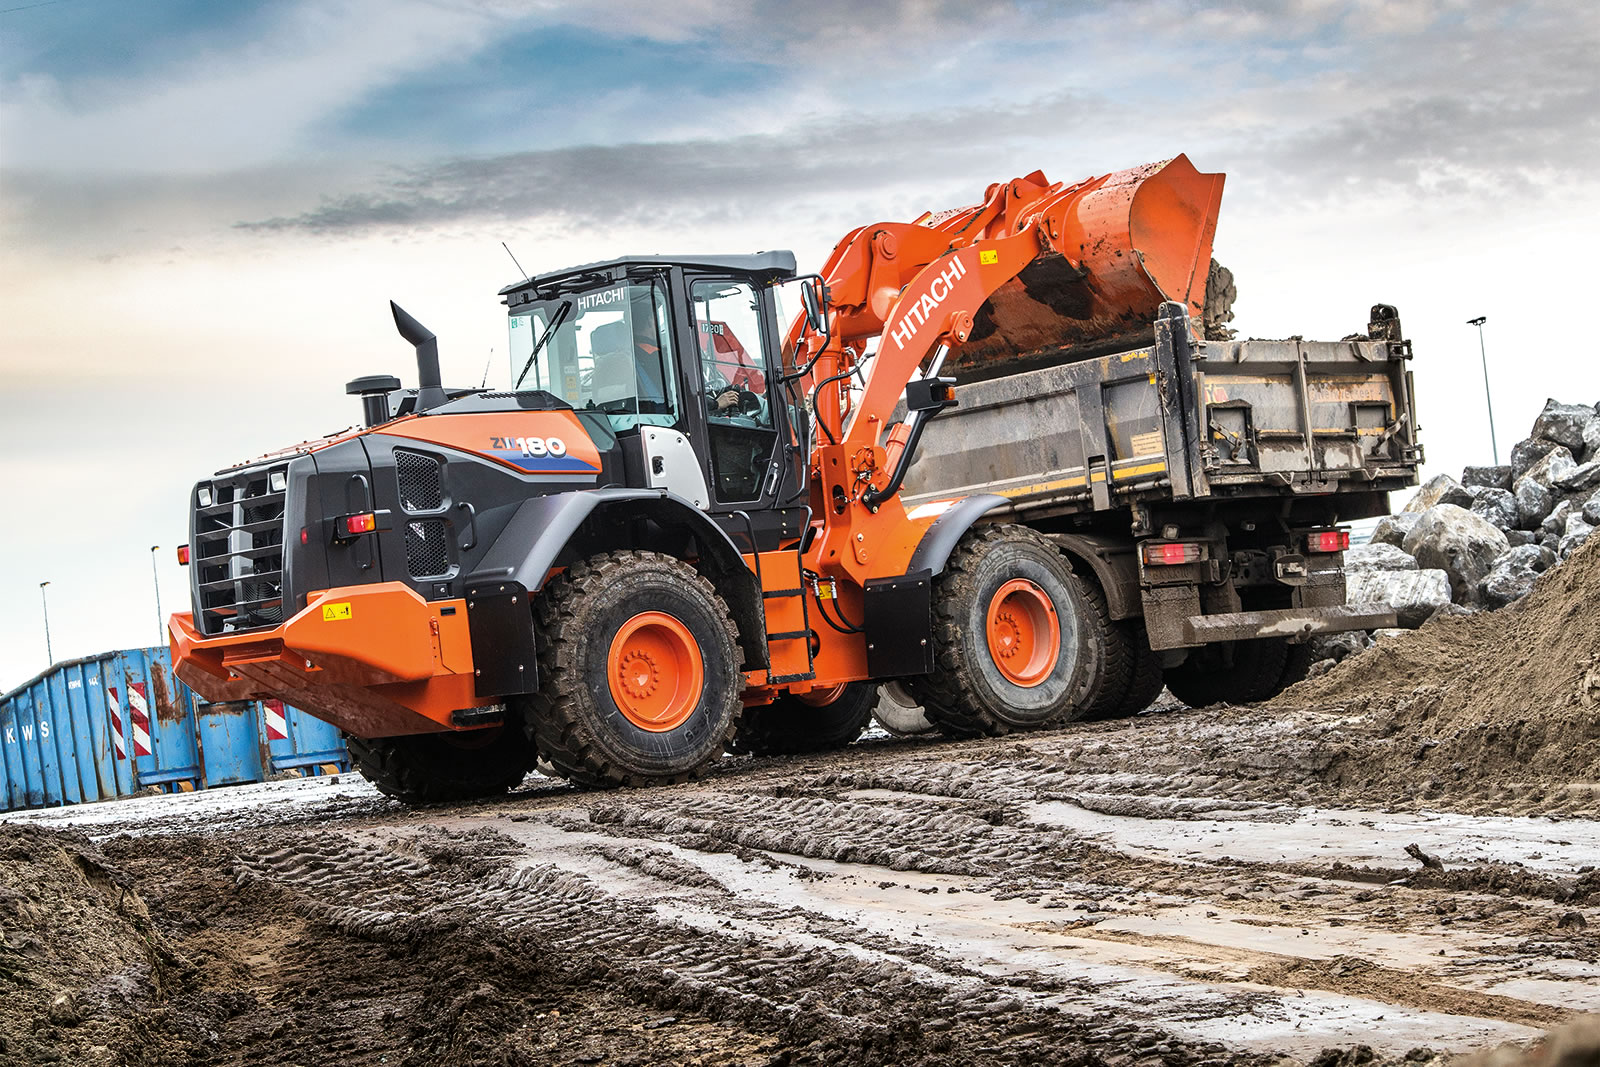 New ZW-6 wheel loaders are designed to meet any challenge